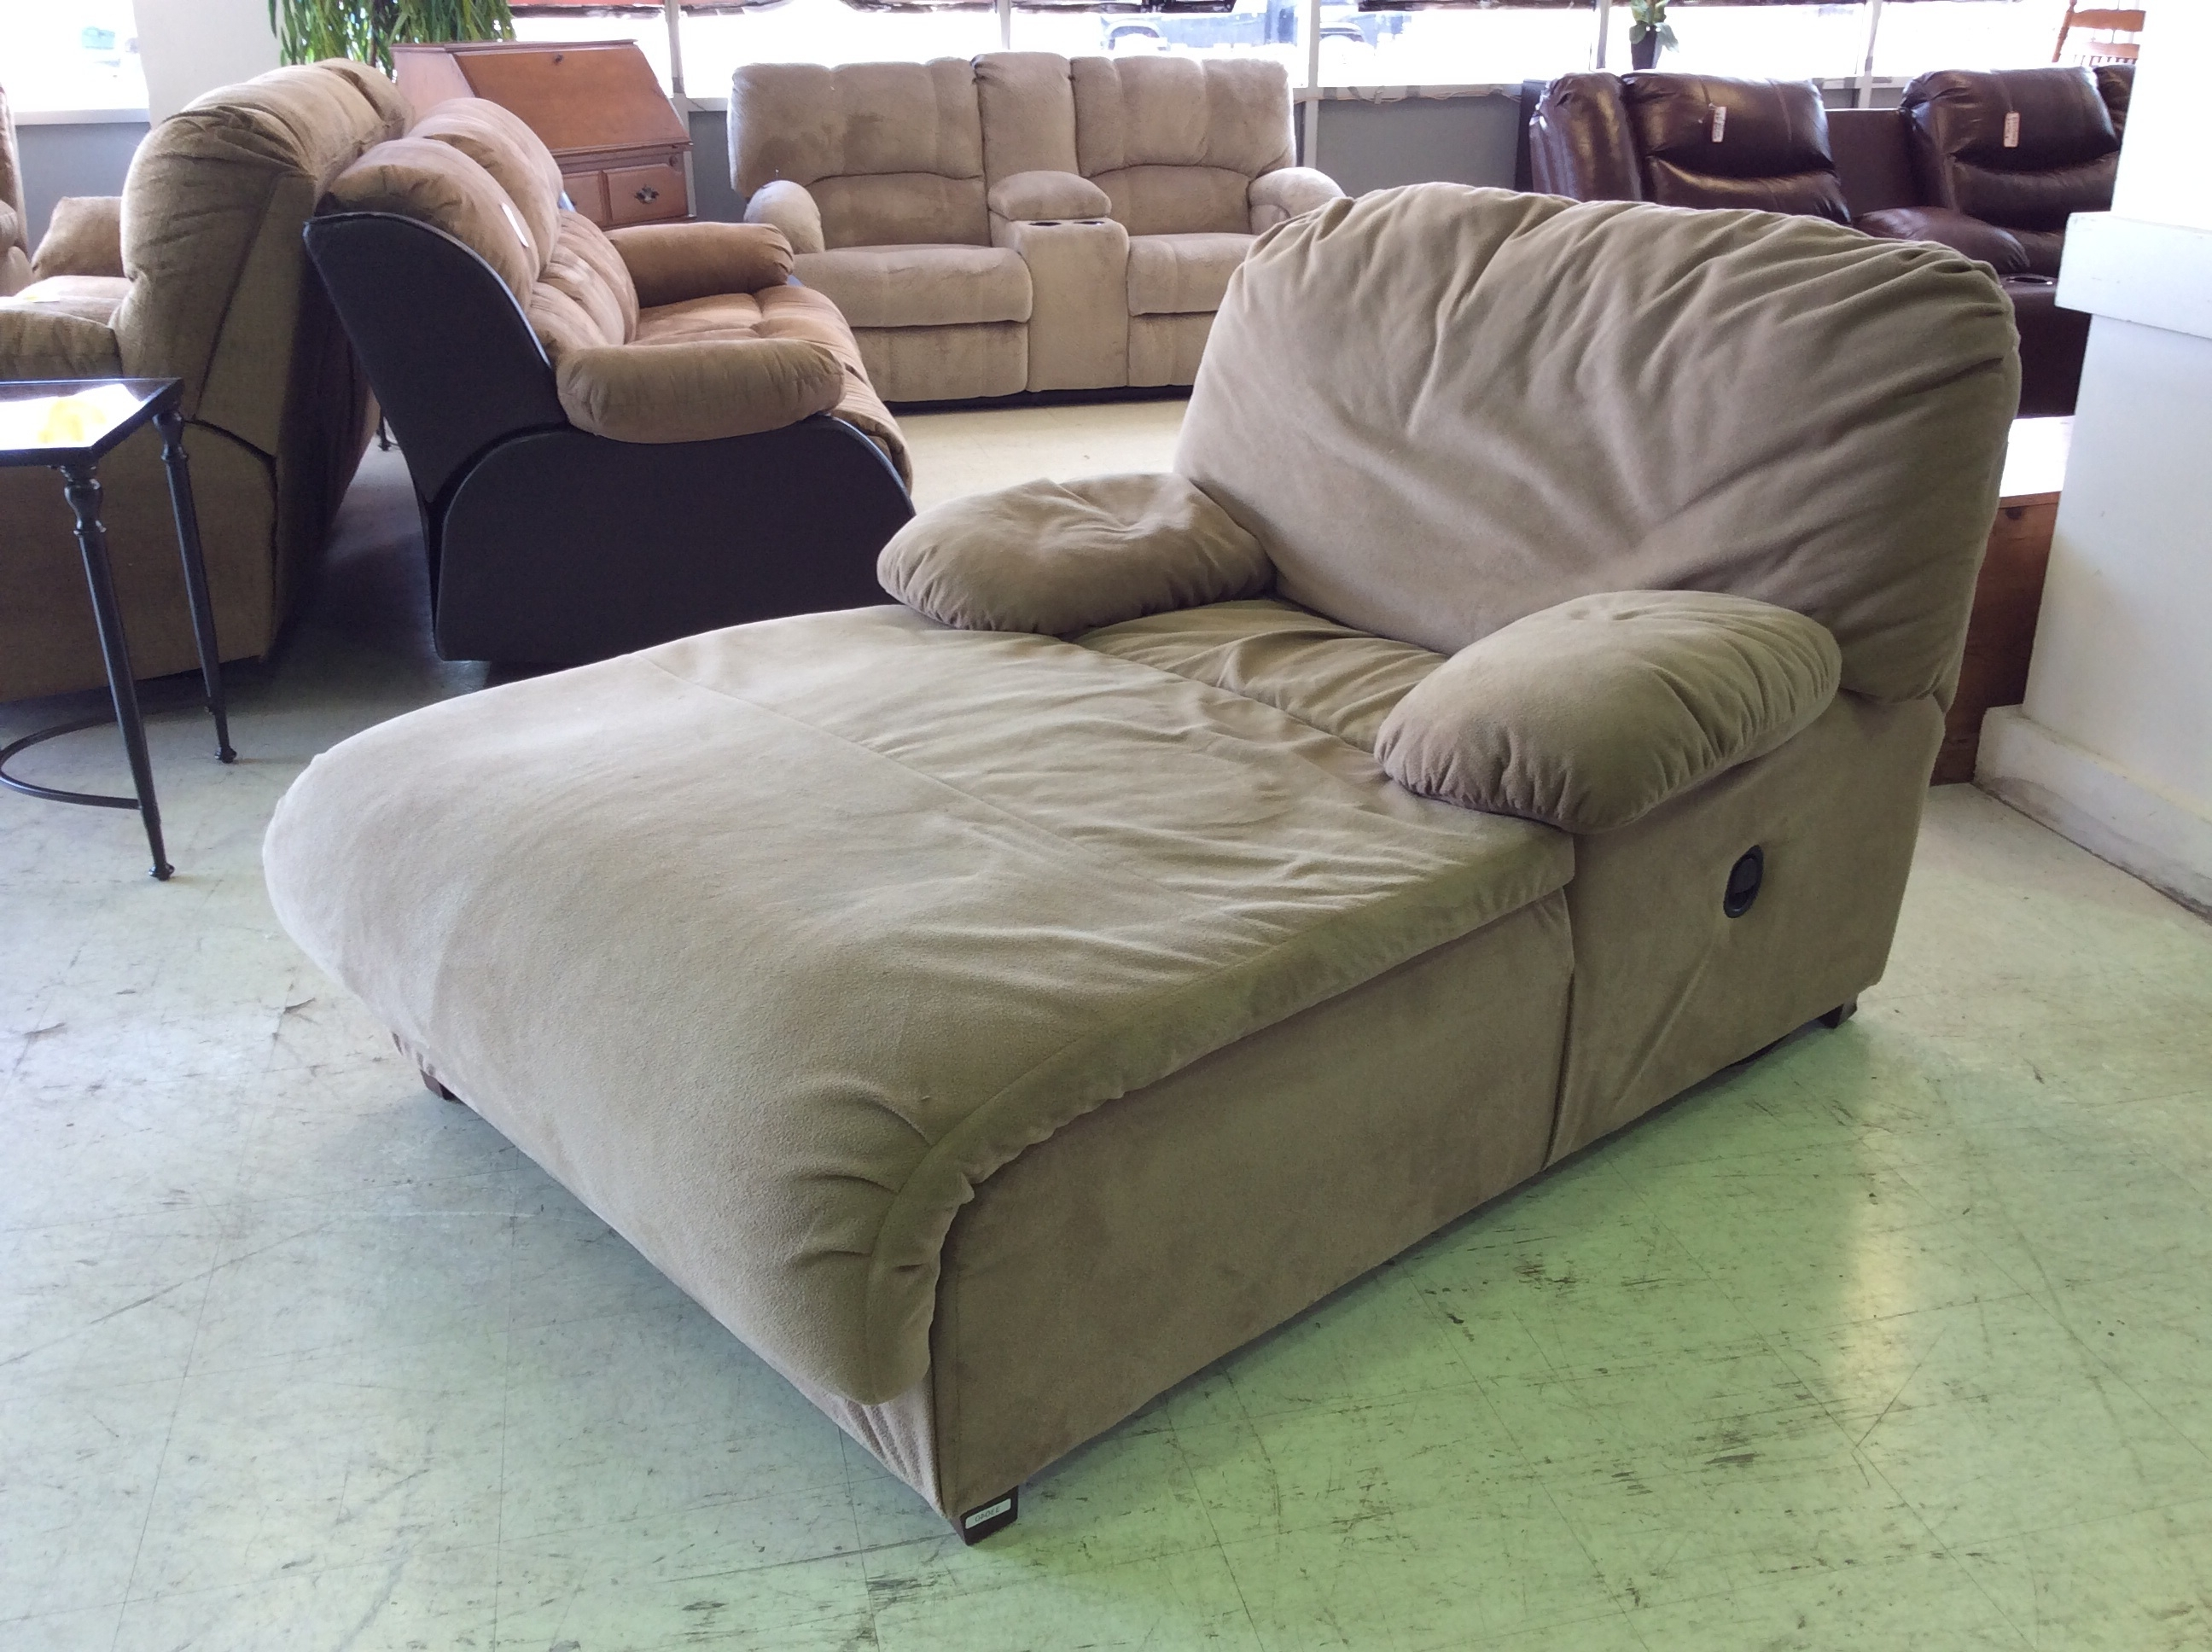 Trendy Decor Of Chaise Lounge Recliner With Luxurious Leopard Print And Pertaining To Chaise Lounge Recliners (View 4 of 15)